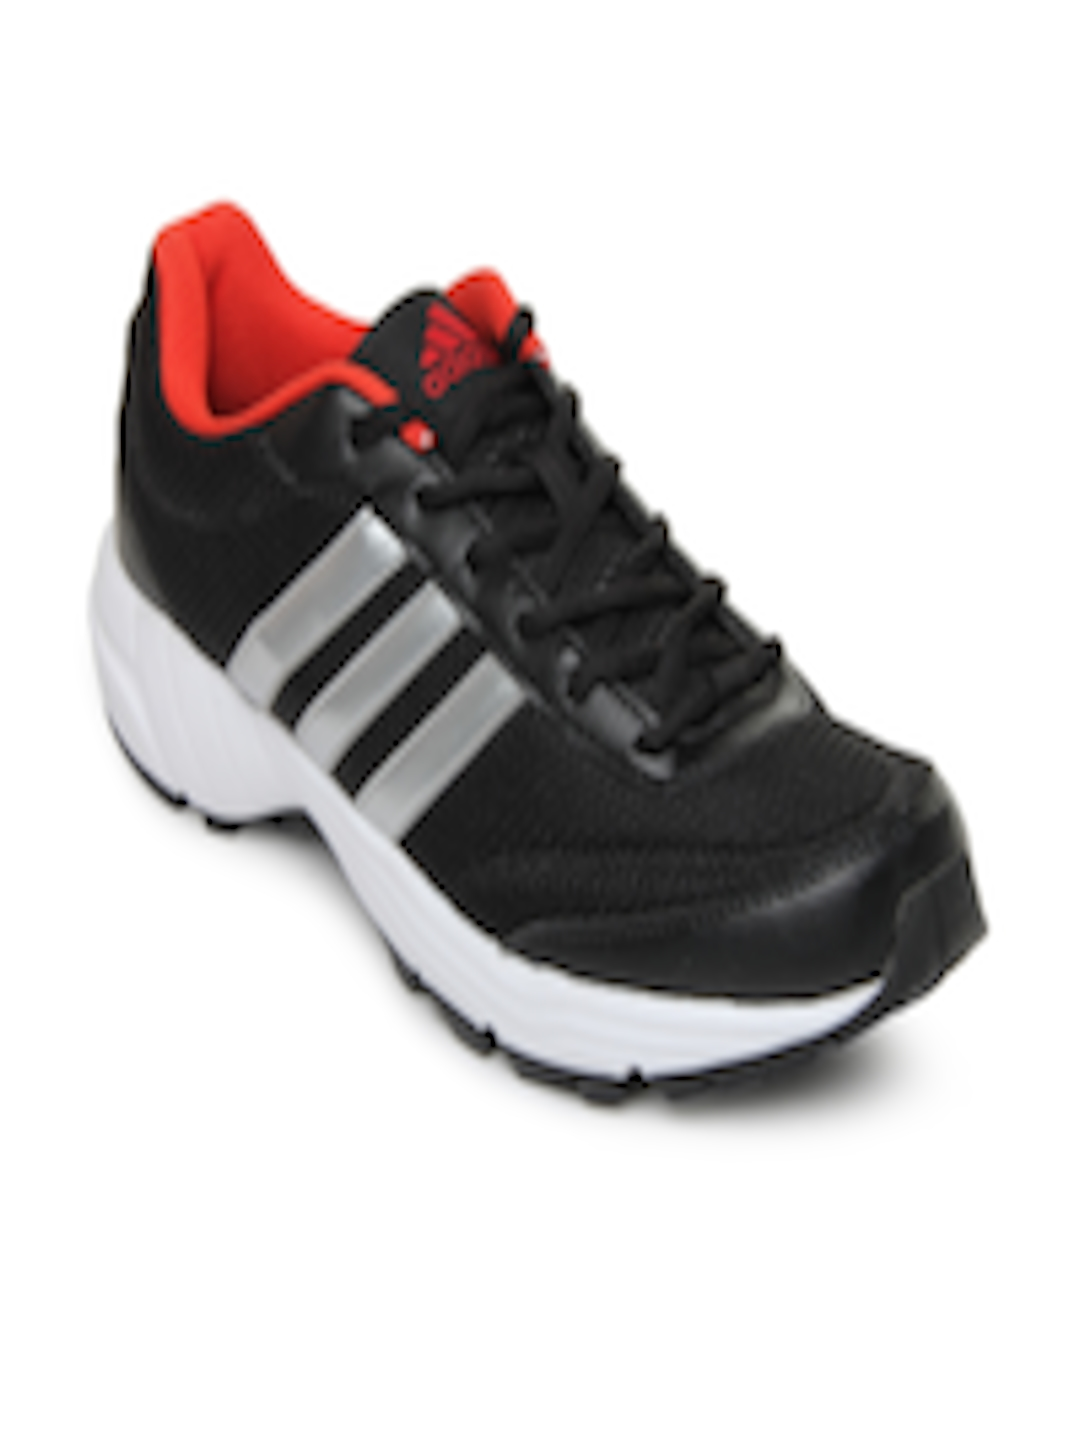 479e34d91730e Adidas Phantom 2m Sports Shoes - Style Guru  Fashion